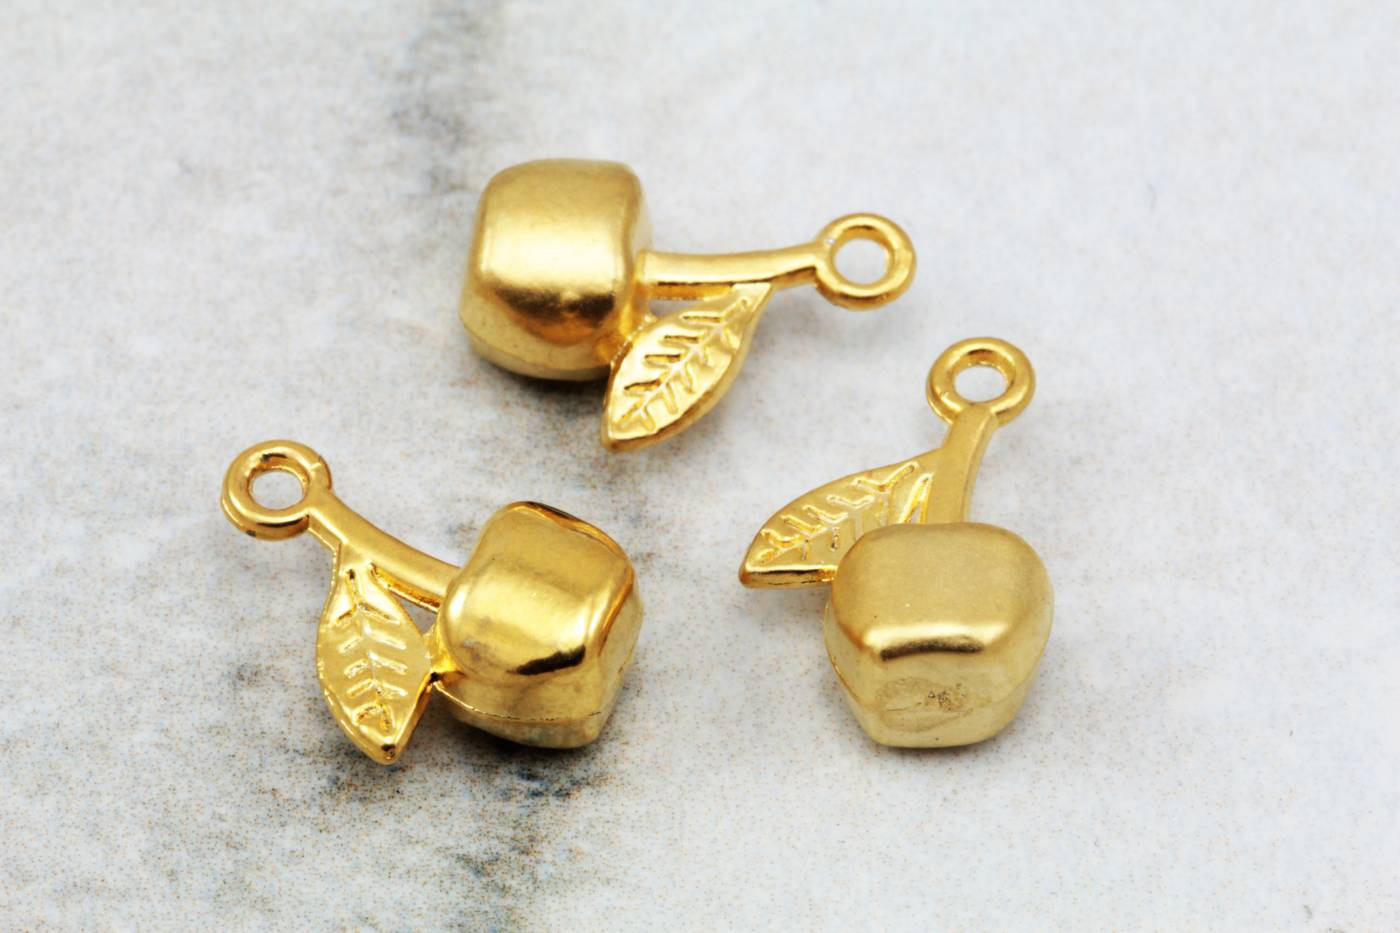 gold-findings-jewelry-supplies-cchange.jpg